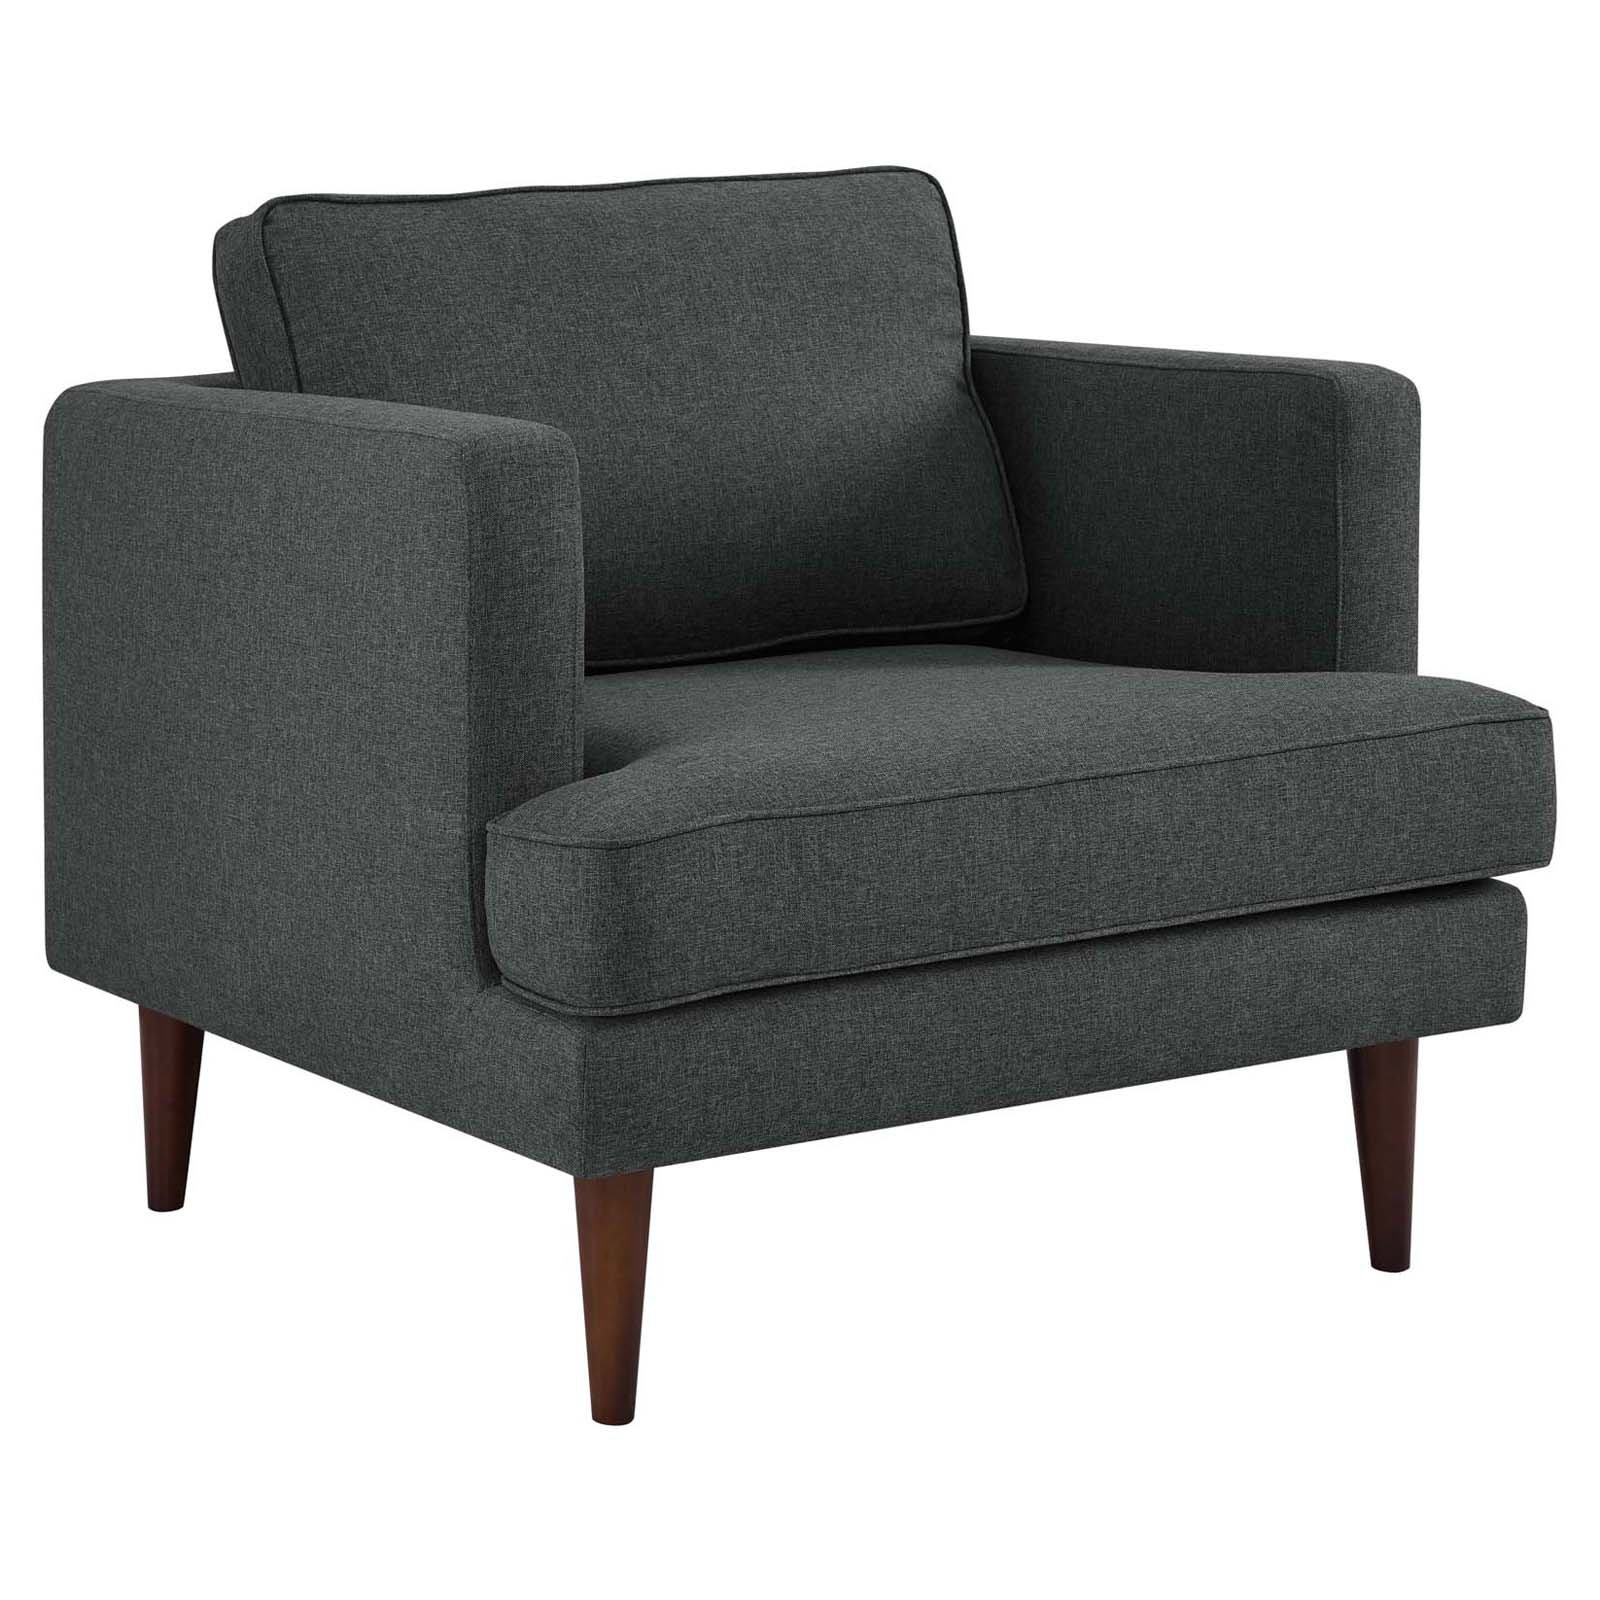 Modway Agile Fabric Upholstered Armchair, Multiple Colors